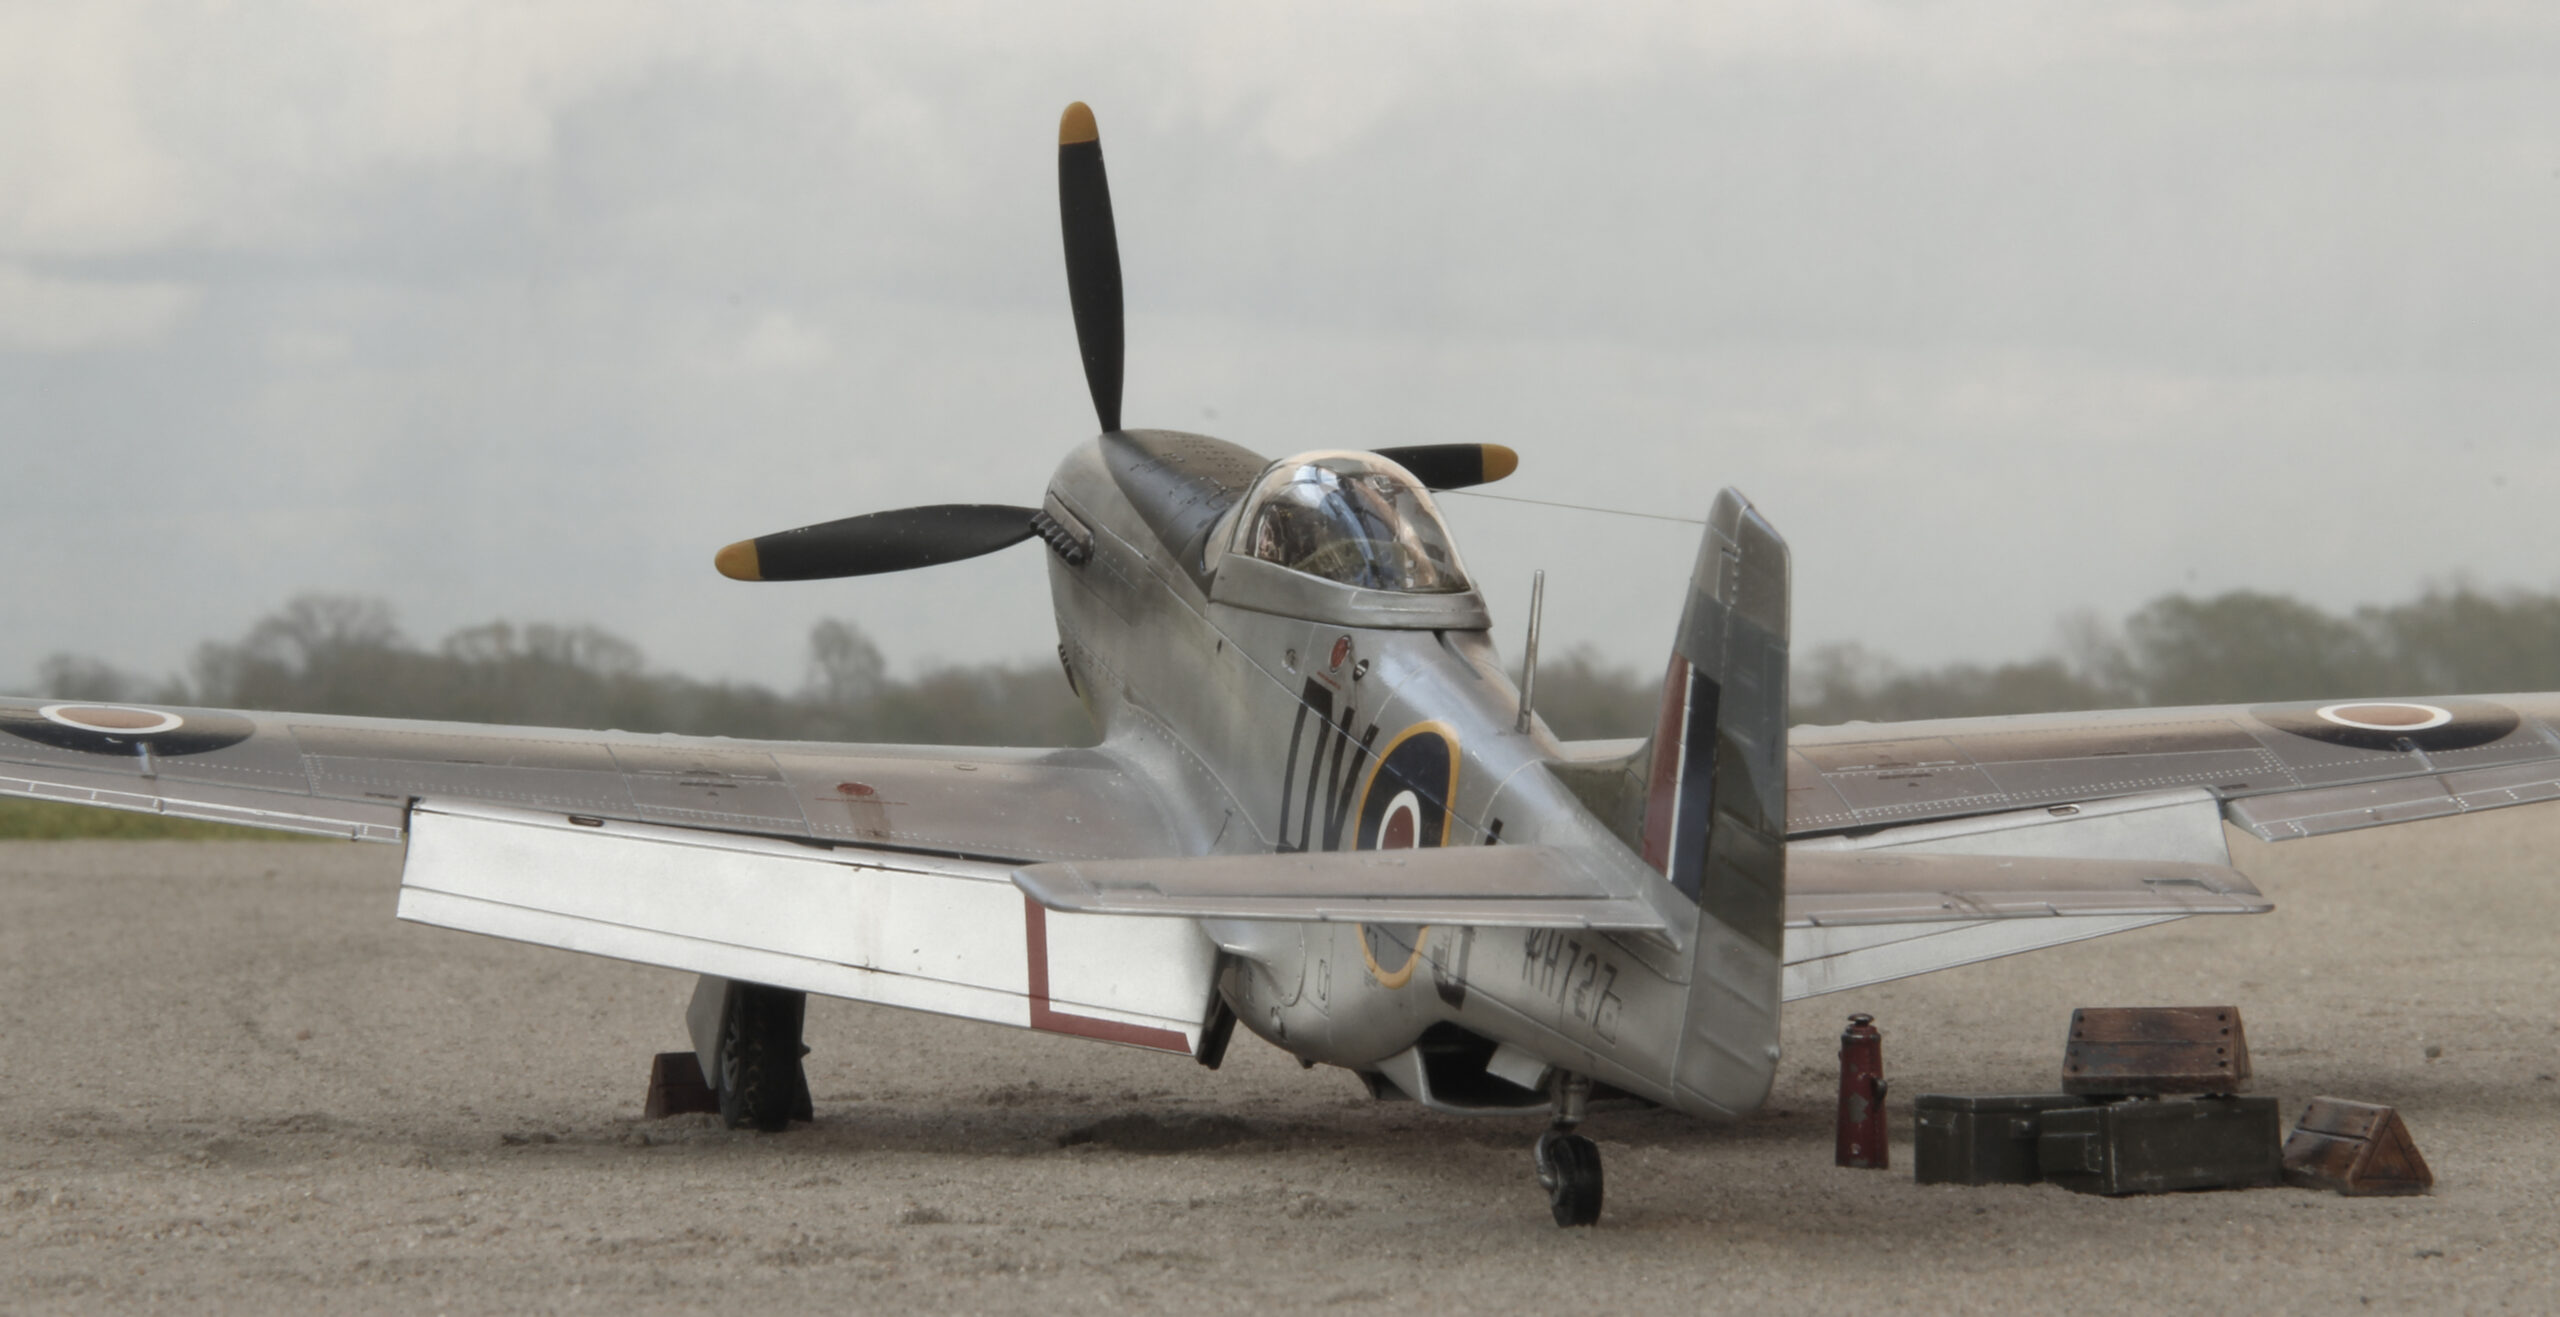 P-51K Mustang Mk IVa of 93 Squadron, Italy in 1946. Airfix 1/48 scale